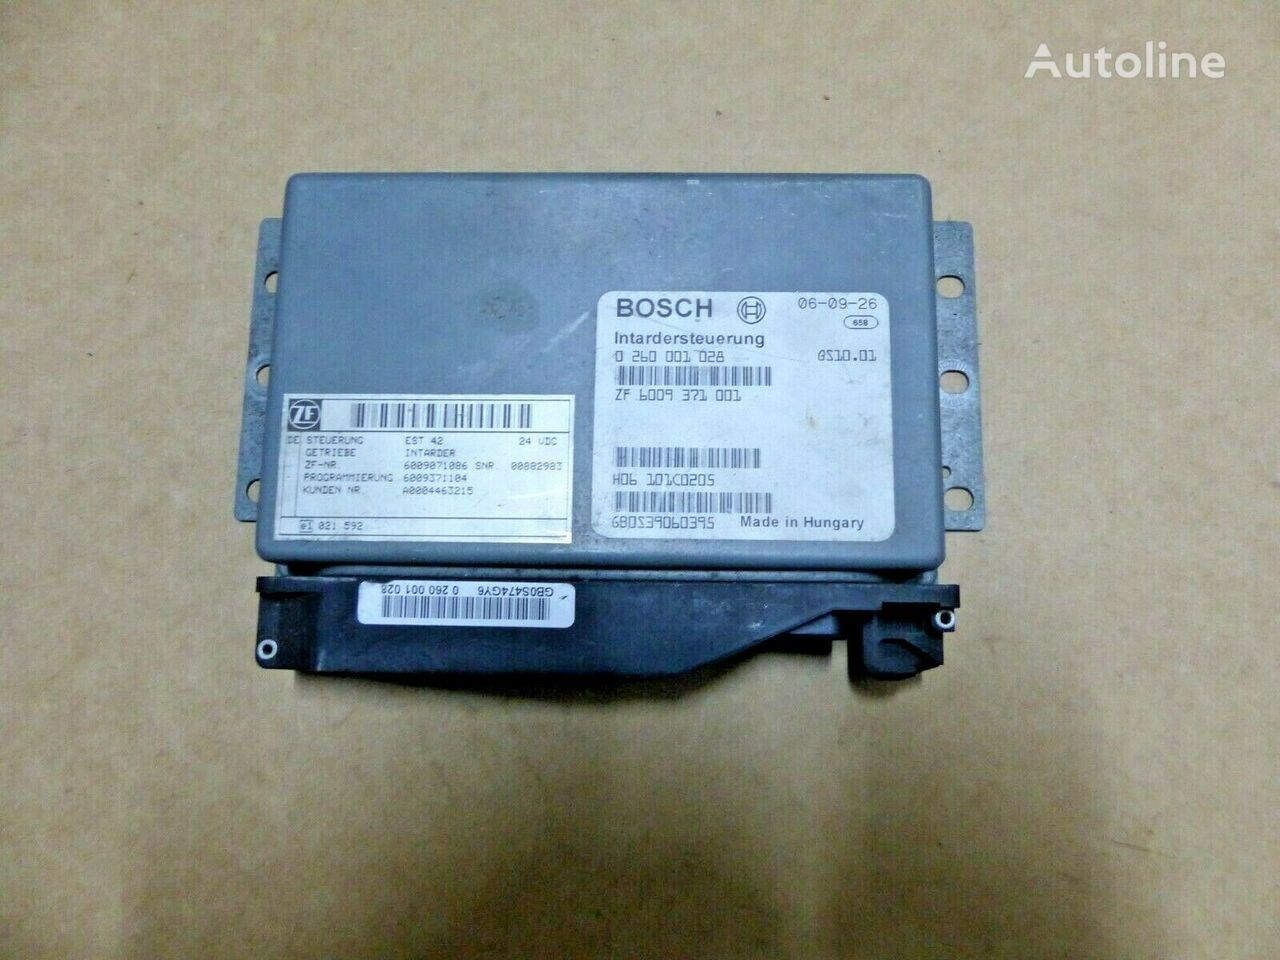 BOSCH Intardersteuerung ZF control unit for IVECO truck